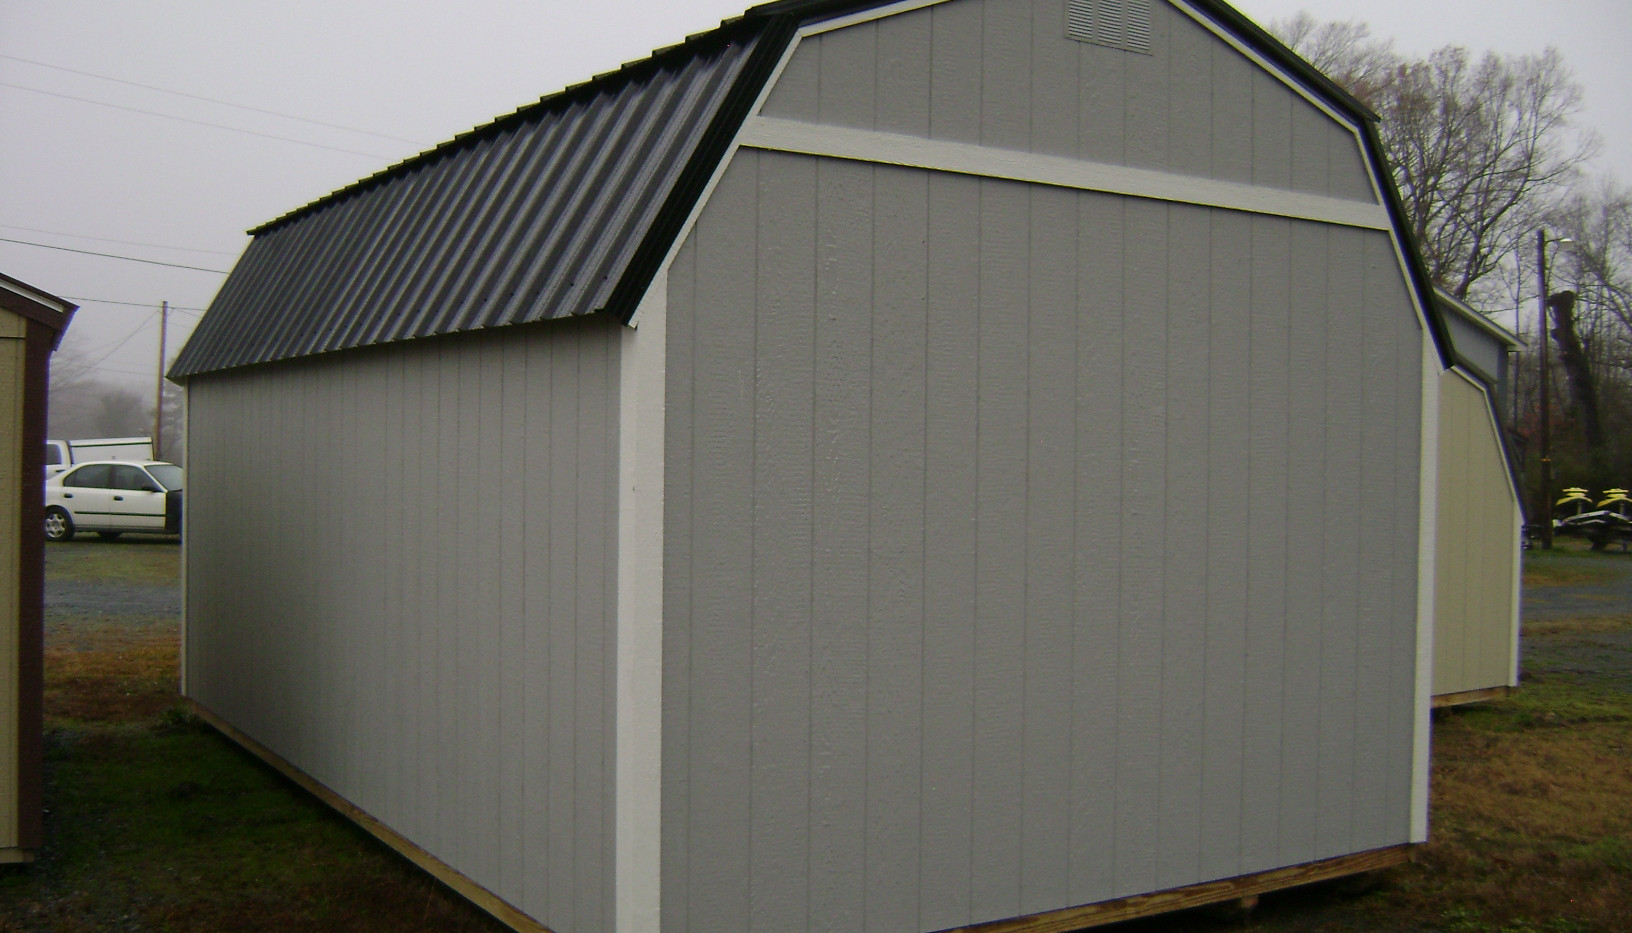 Lofted Barn - PLB-8770-1220-120720 (8).J